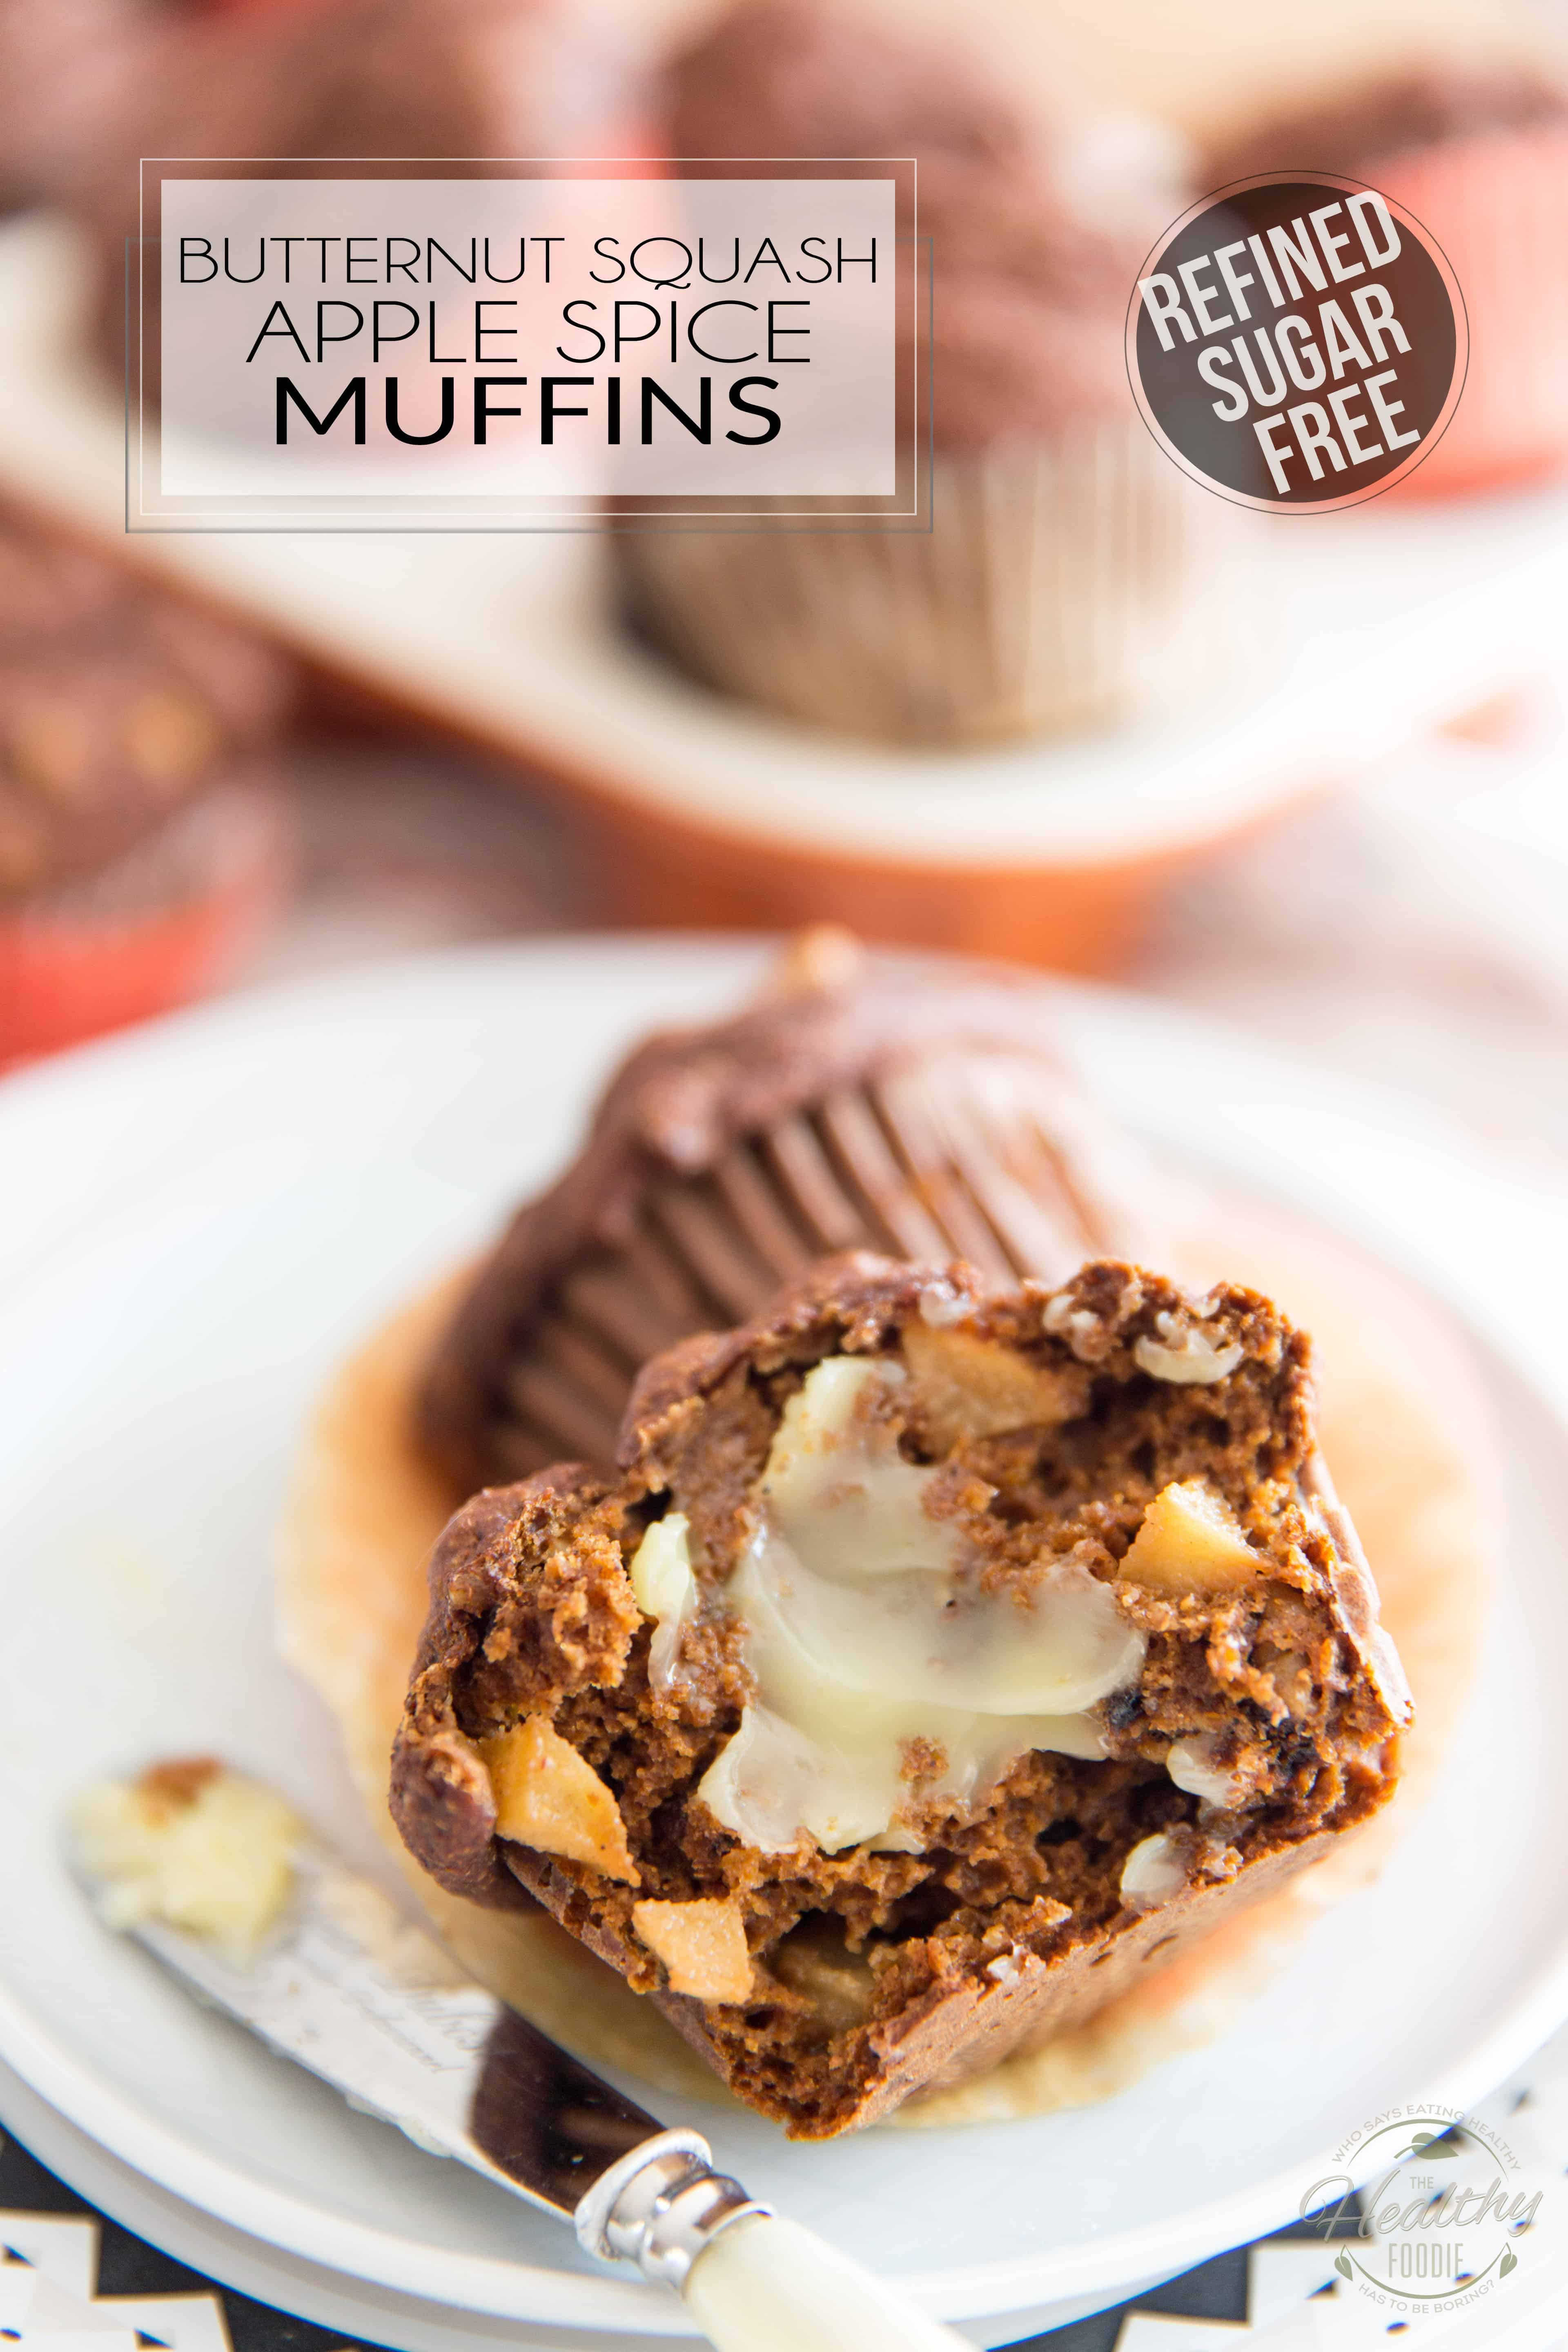 Despite them being made with nothing but wholesome ingredients and containing no refined sugar whatsoever, these Butternut Squash Apple Spice Muffins taste so delicious, you'll never believe how healthy they actually are!